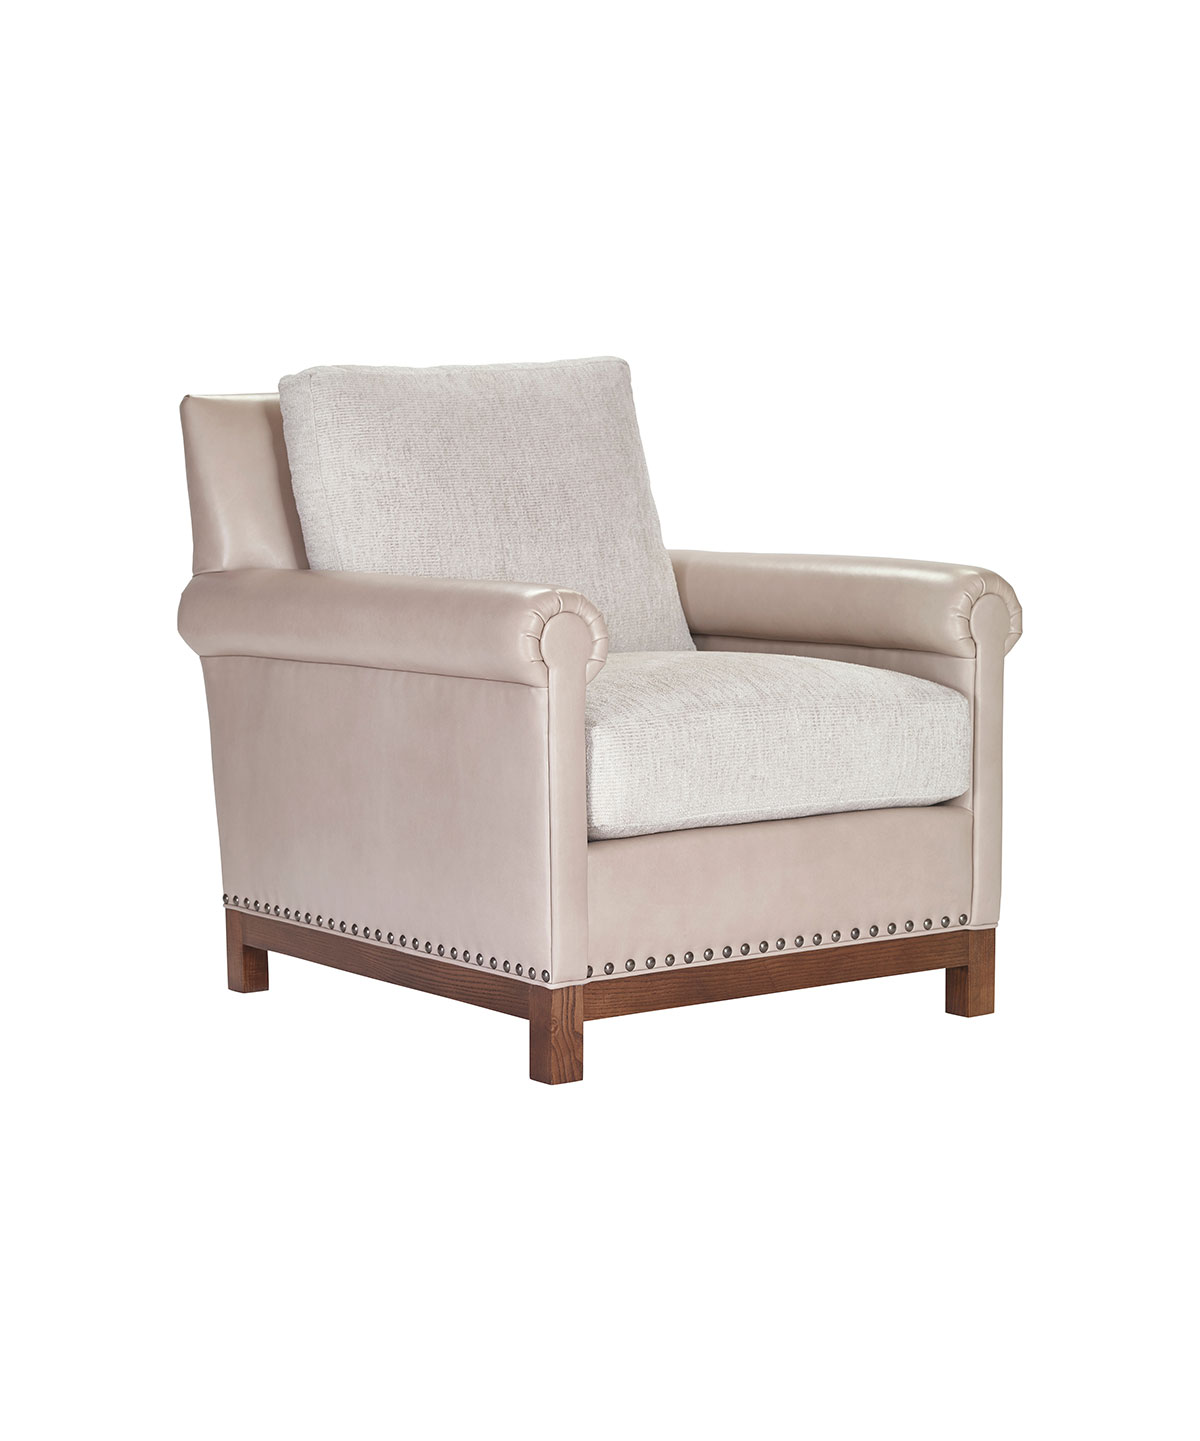 Convento Lounge Chair